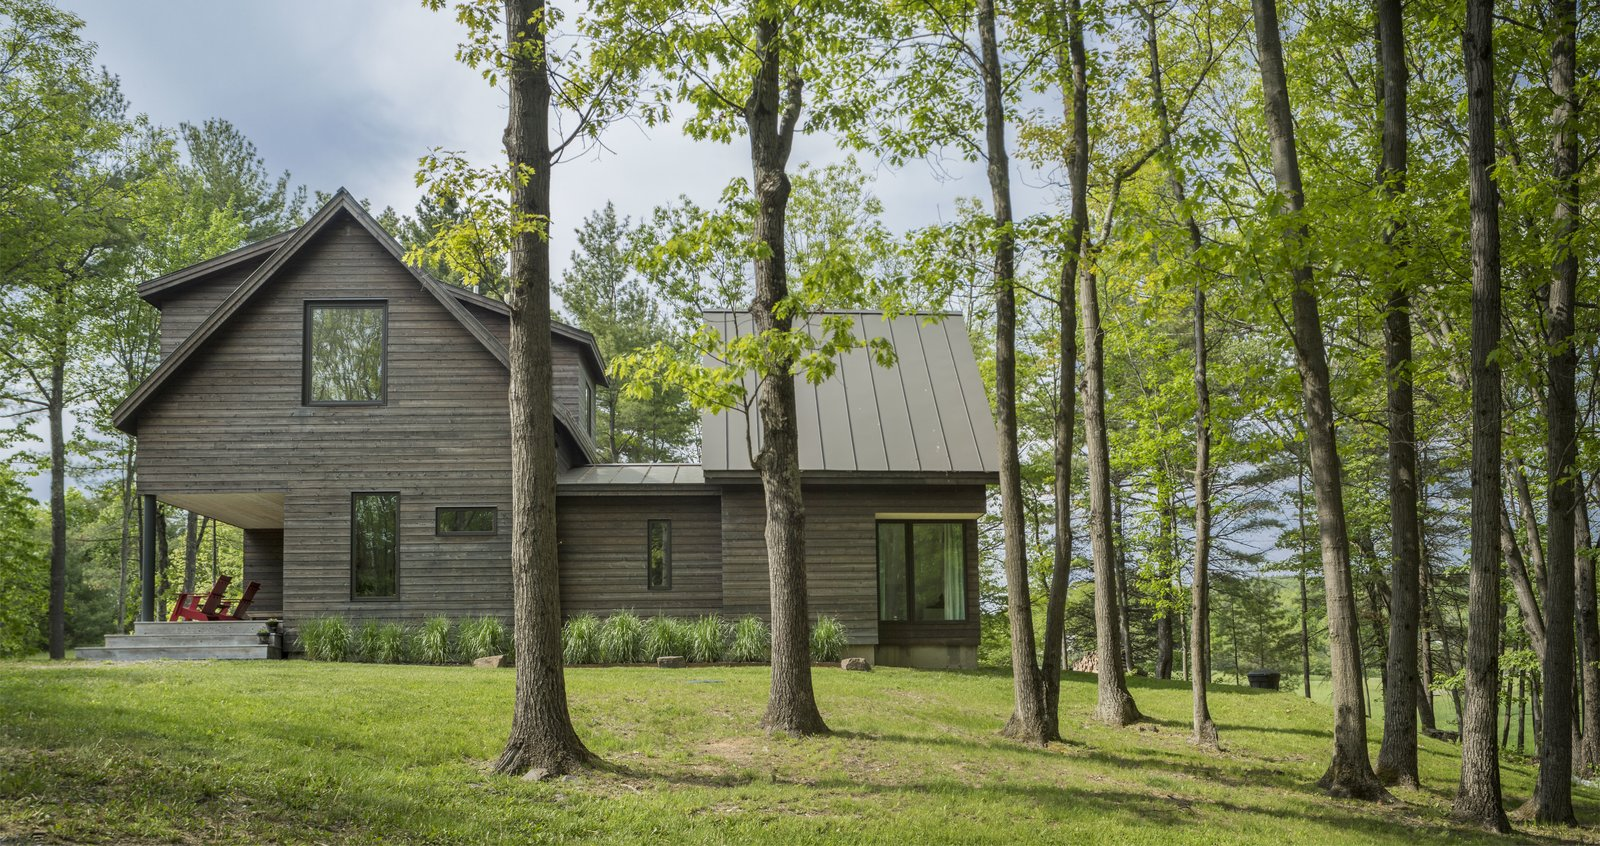 Architect Elizabeth Herrmann's Knoll House project, Best Transitional category winner of 2017 Marvin Architects Challenge.   Tagged: Outdoor and Side Yard.  Knoll House by Marvin Windows and Doors